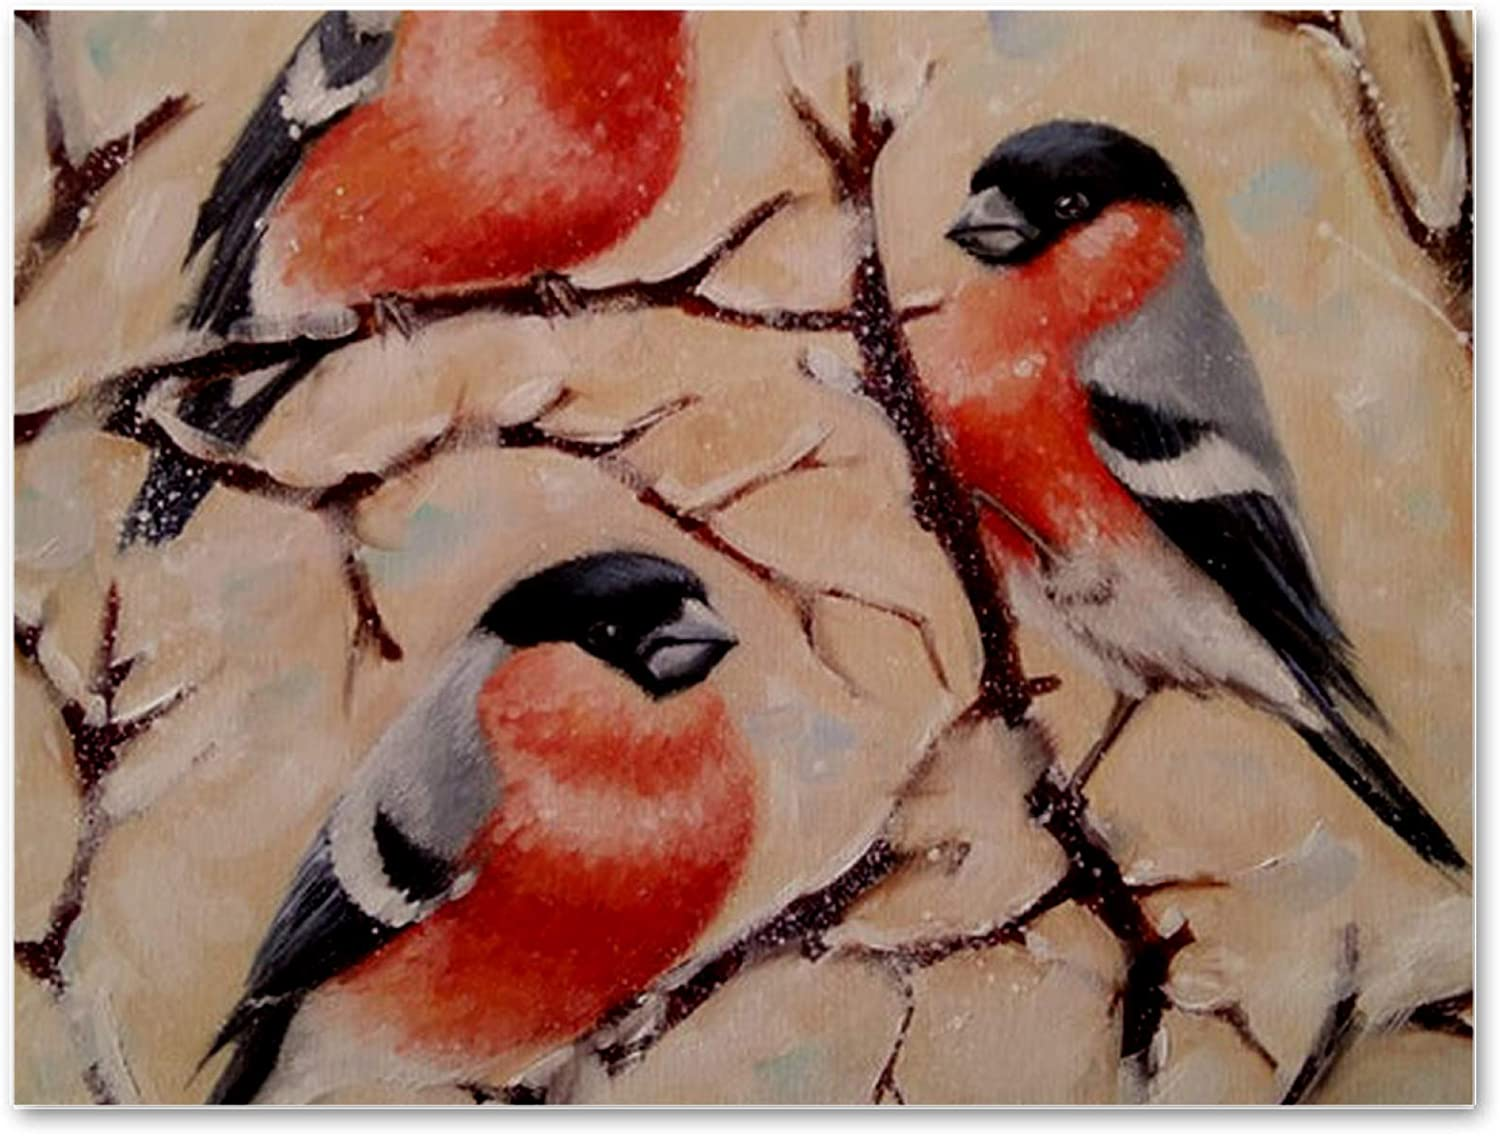 imobaby Oil Painting on Canvas Bullfinch Birds Prints with Wooden Frame for Bedroom Home Living Room Office Modern Wall Art Decor, 11.8x15.7 in